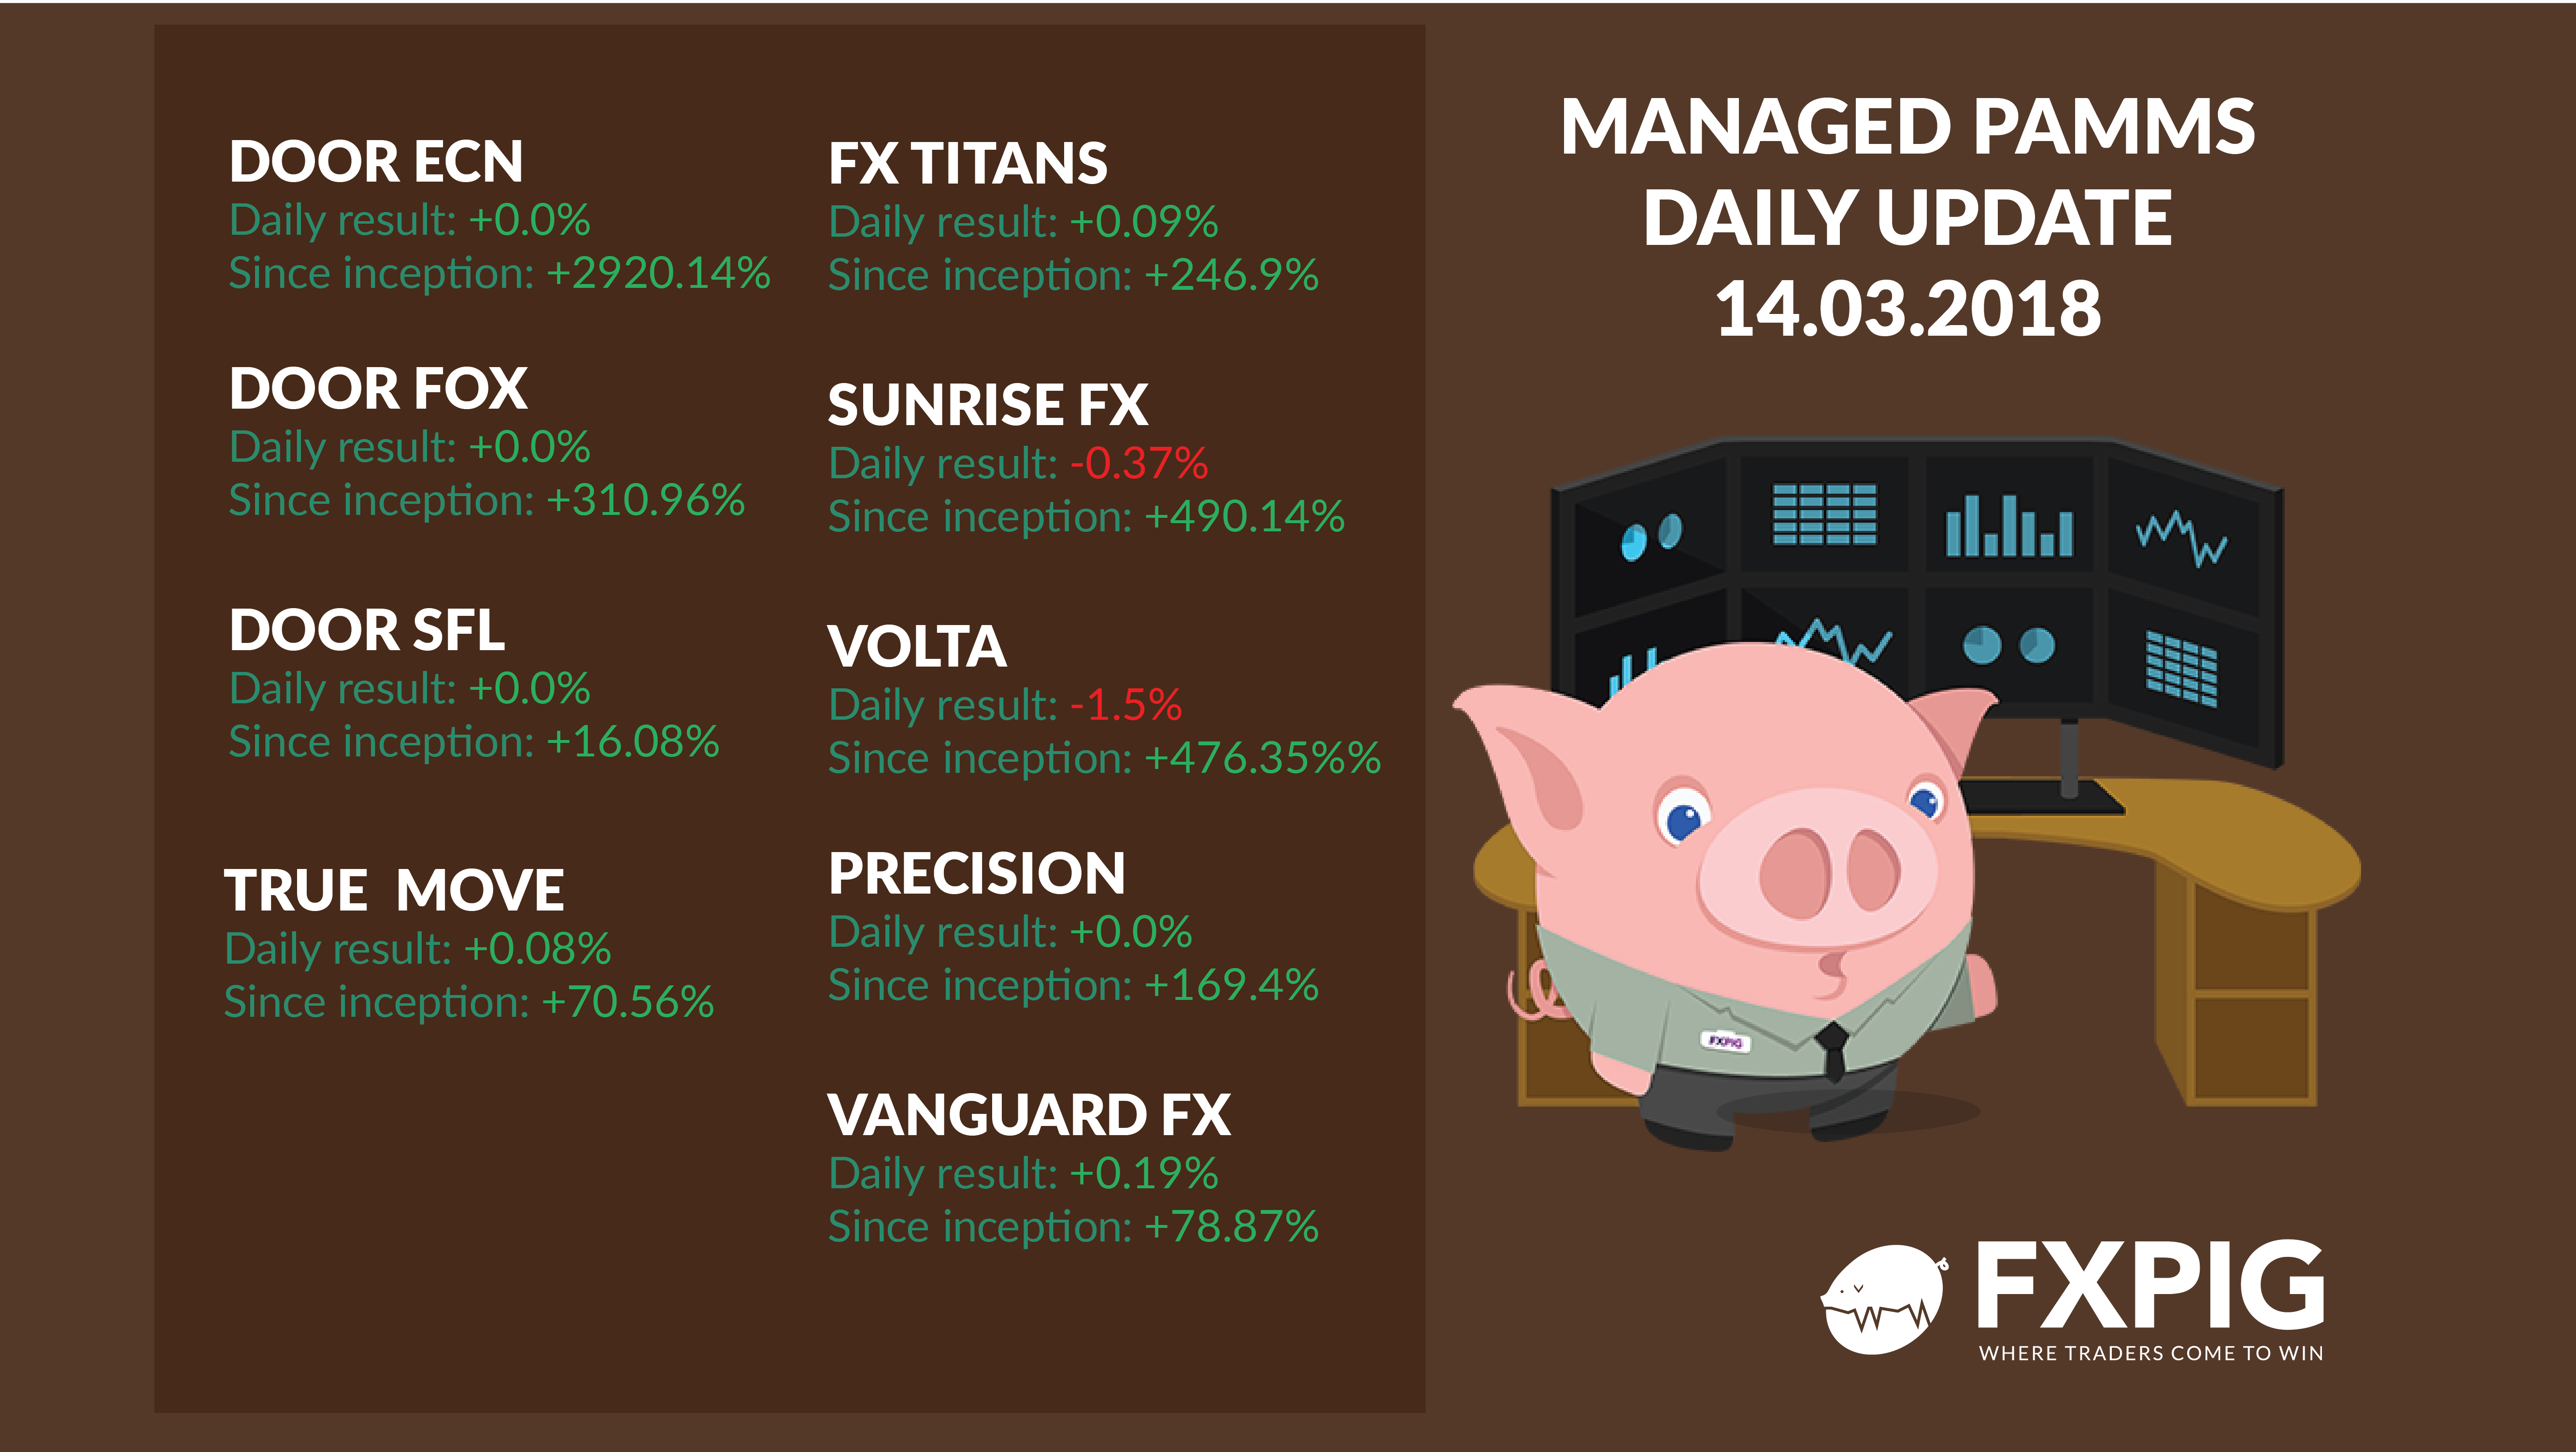 FOREX_Managed-Daily-Updates_FXPIG